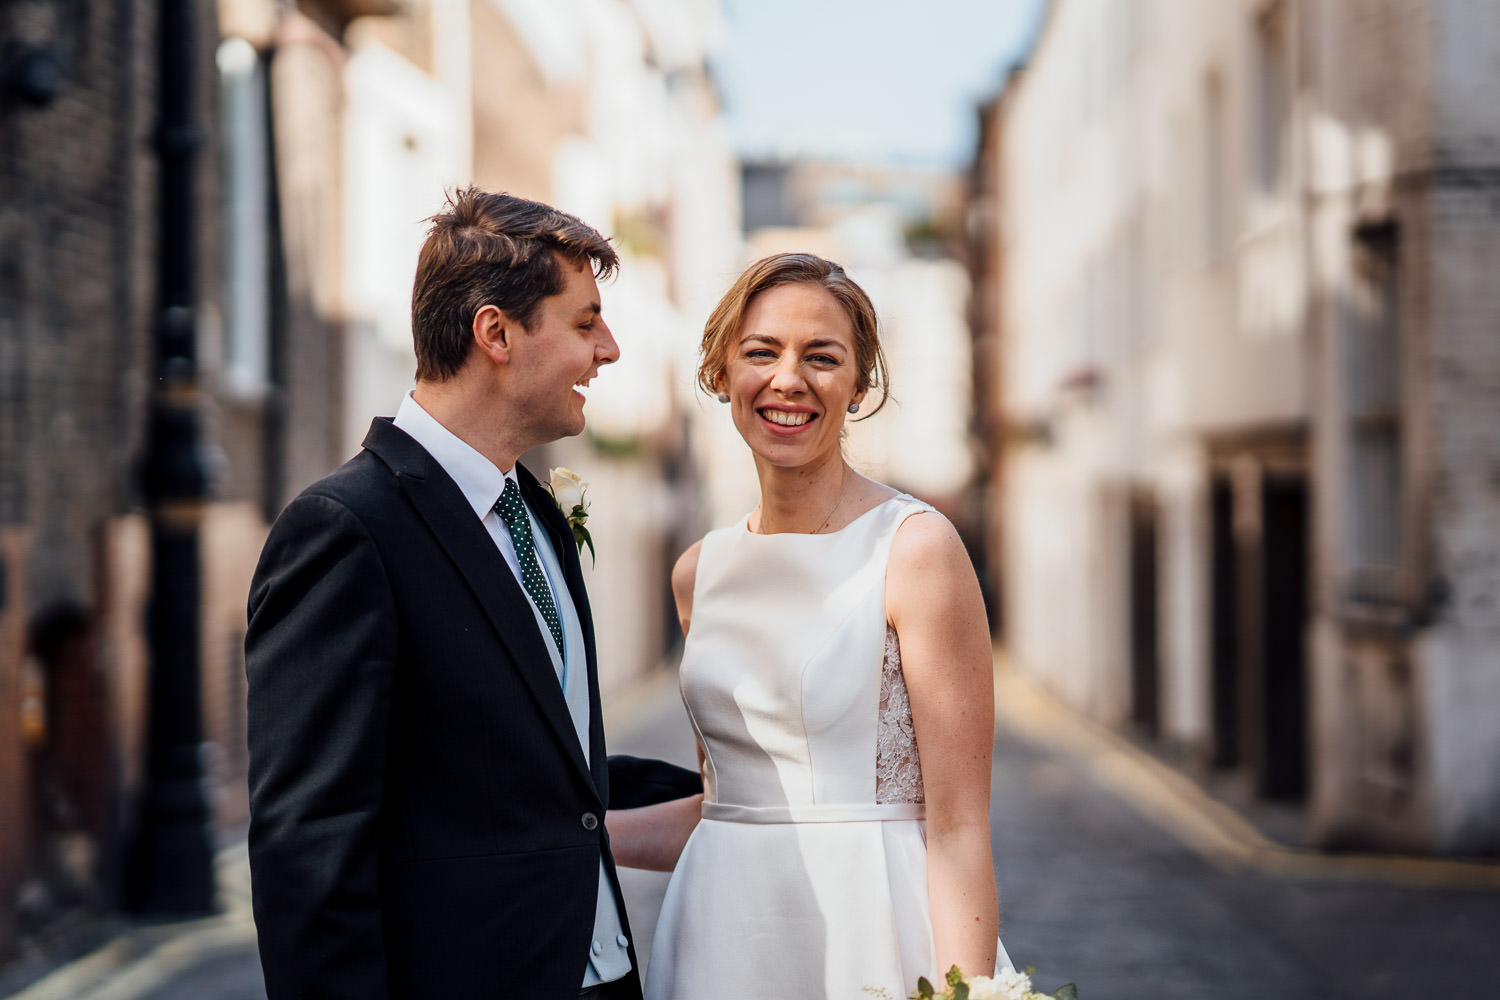 bridal portraits in london elopement wedding by the shannons photography